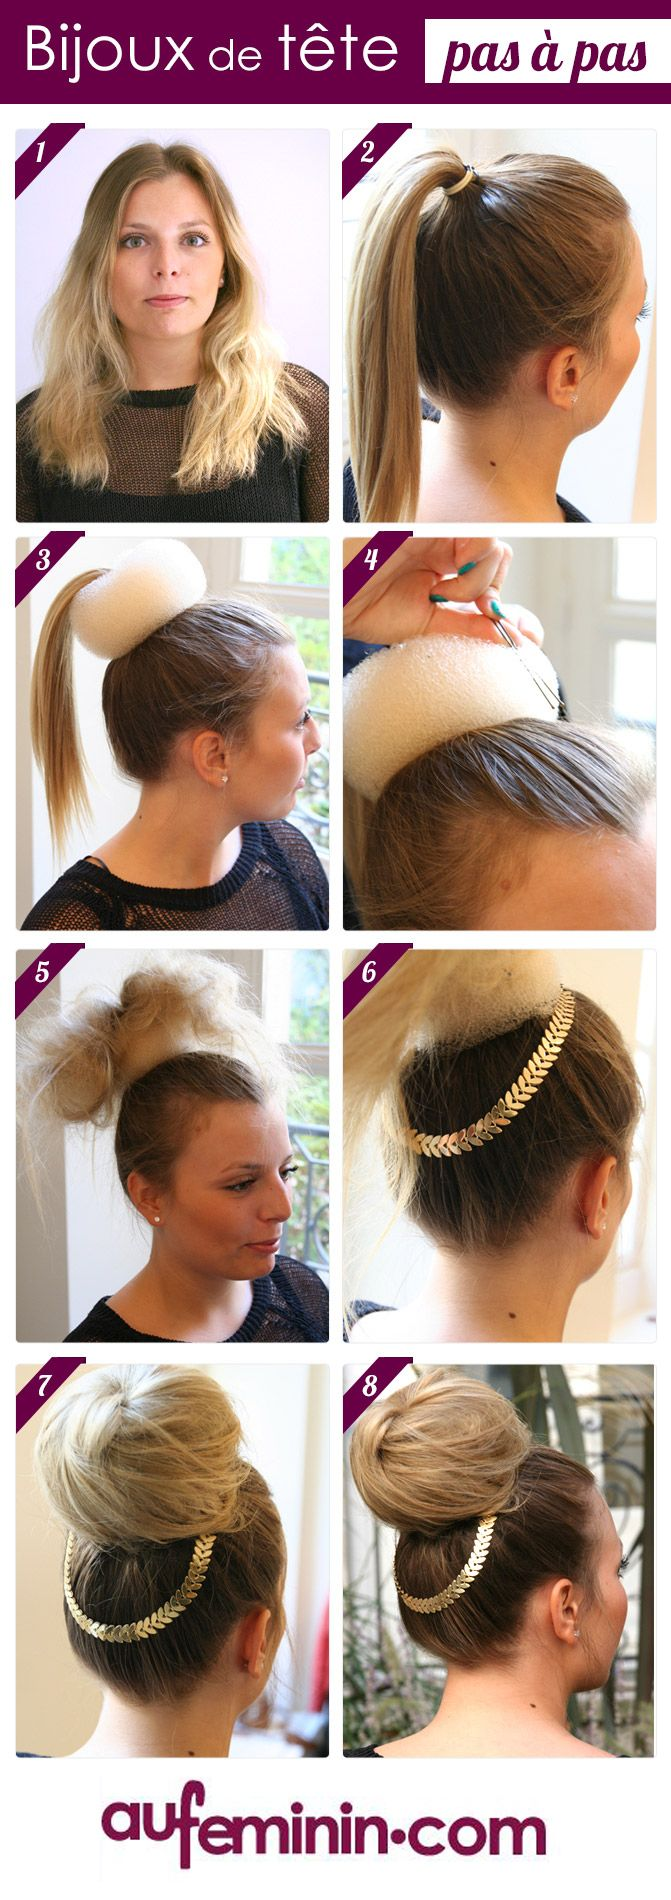 1000 Images About Boulot On Pinterest Coupe Wedding Updo And